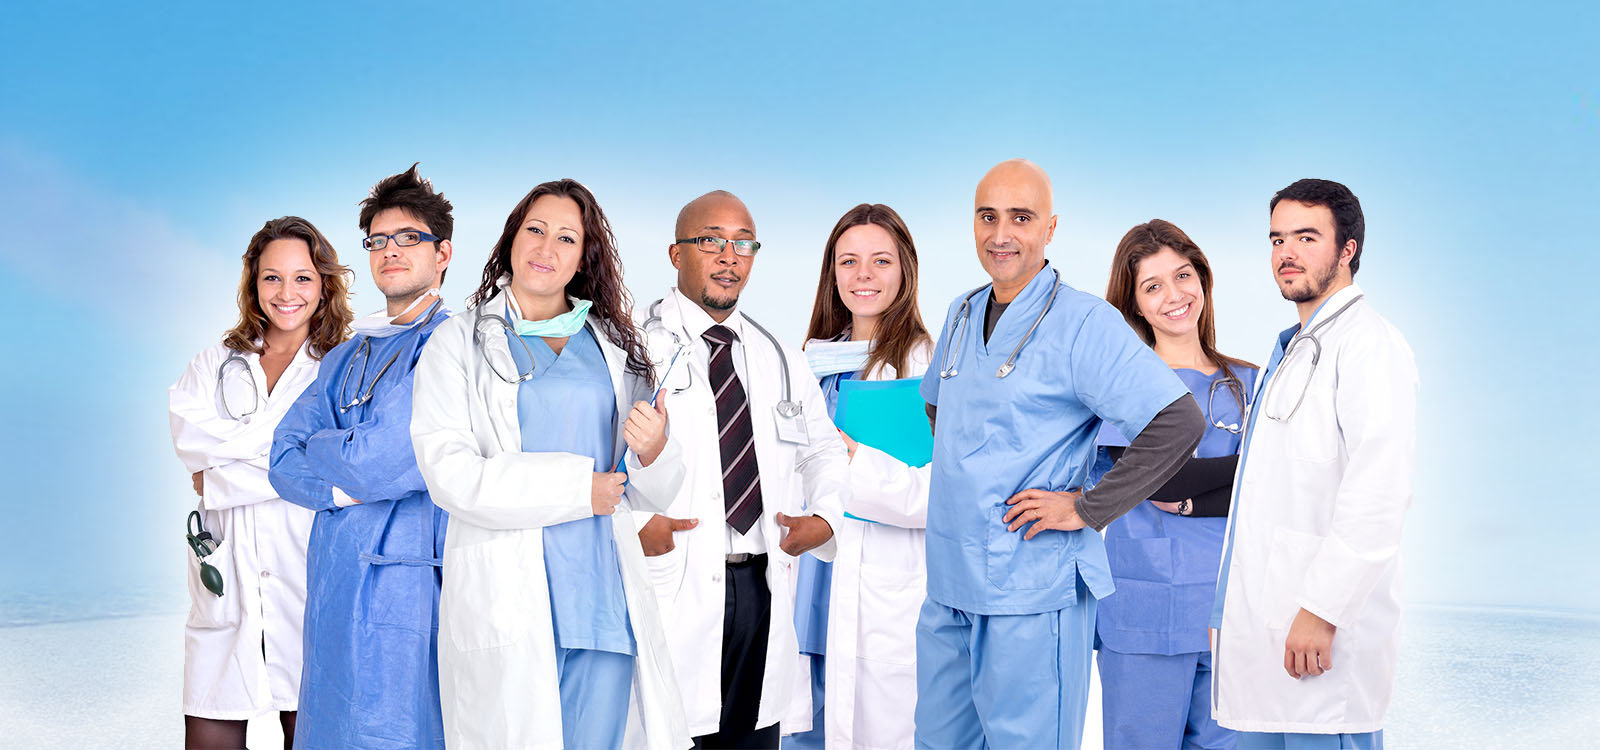 Physiotherapy at Home Multi Disciplinary Team of Healthcare practitioners